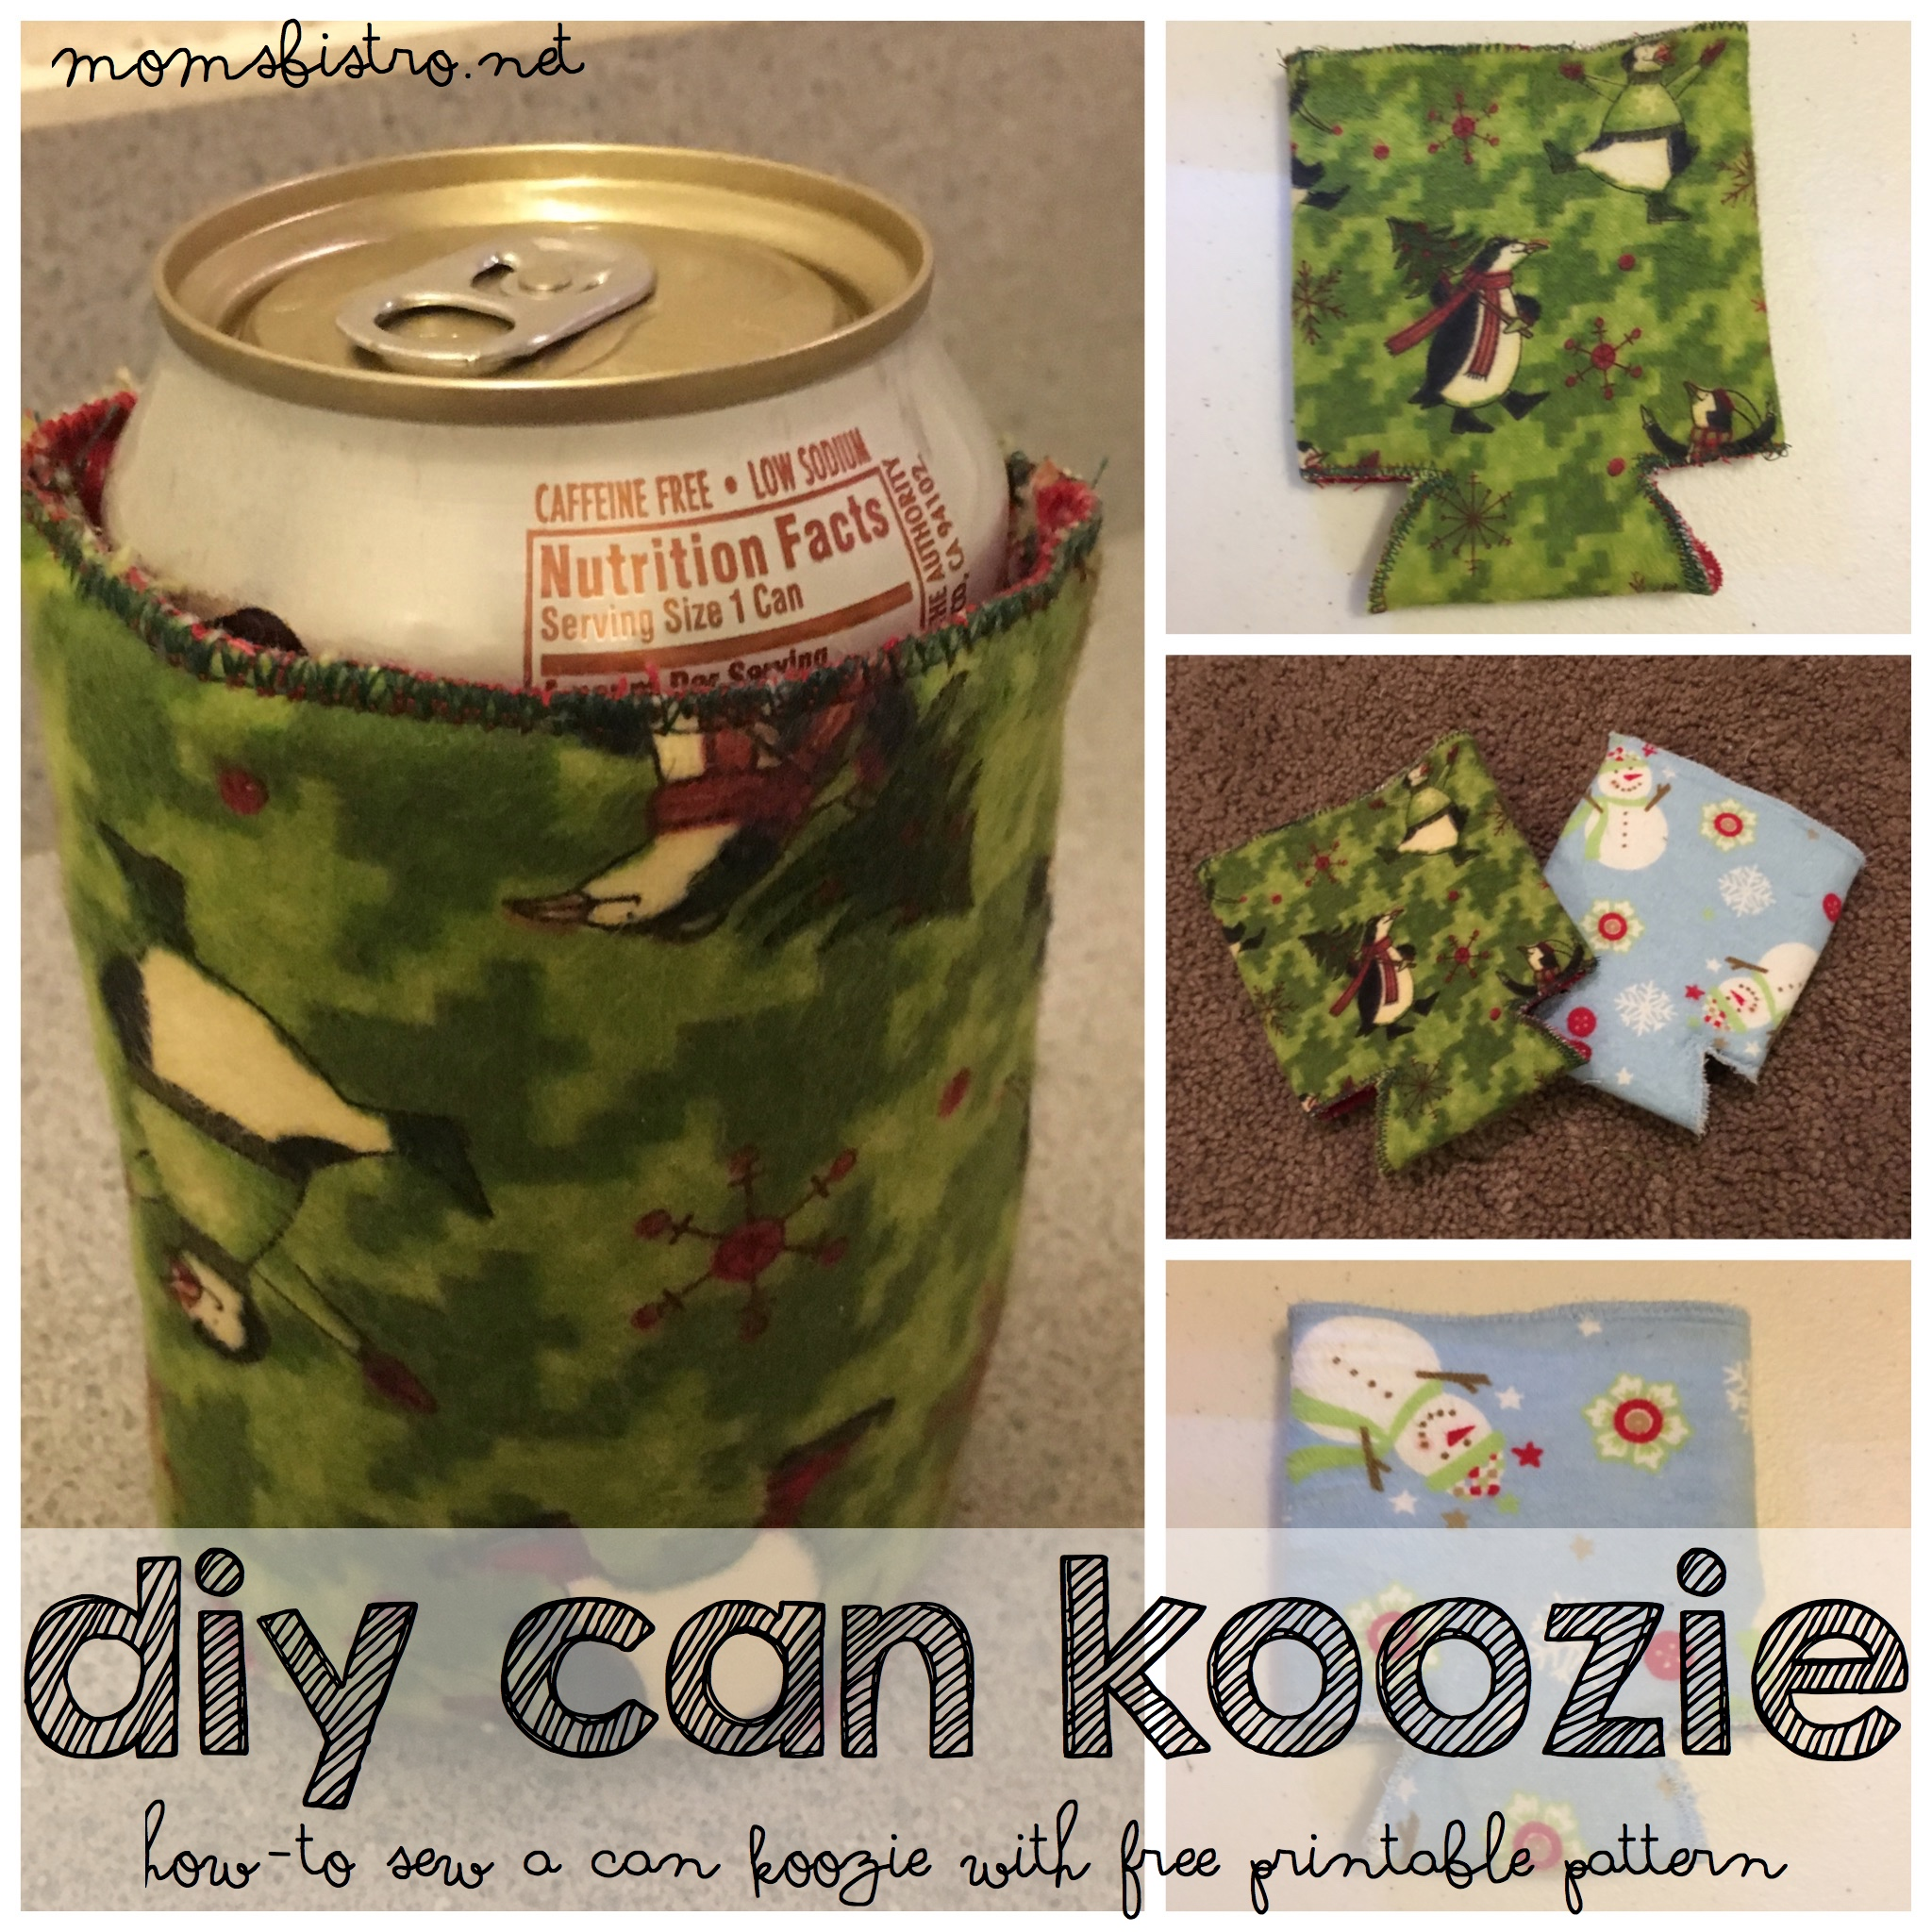 Are You Ready For The Holidays?  Learn How To Make Your Own Can Koozie With This Easy Beginners Sewing Pattern   DIY Can Koozie Tutorial with FREE Printable Pattern